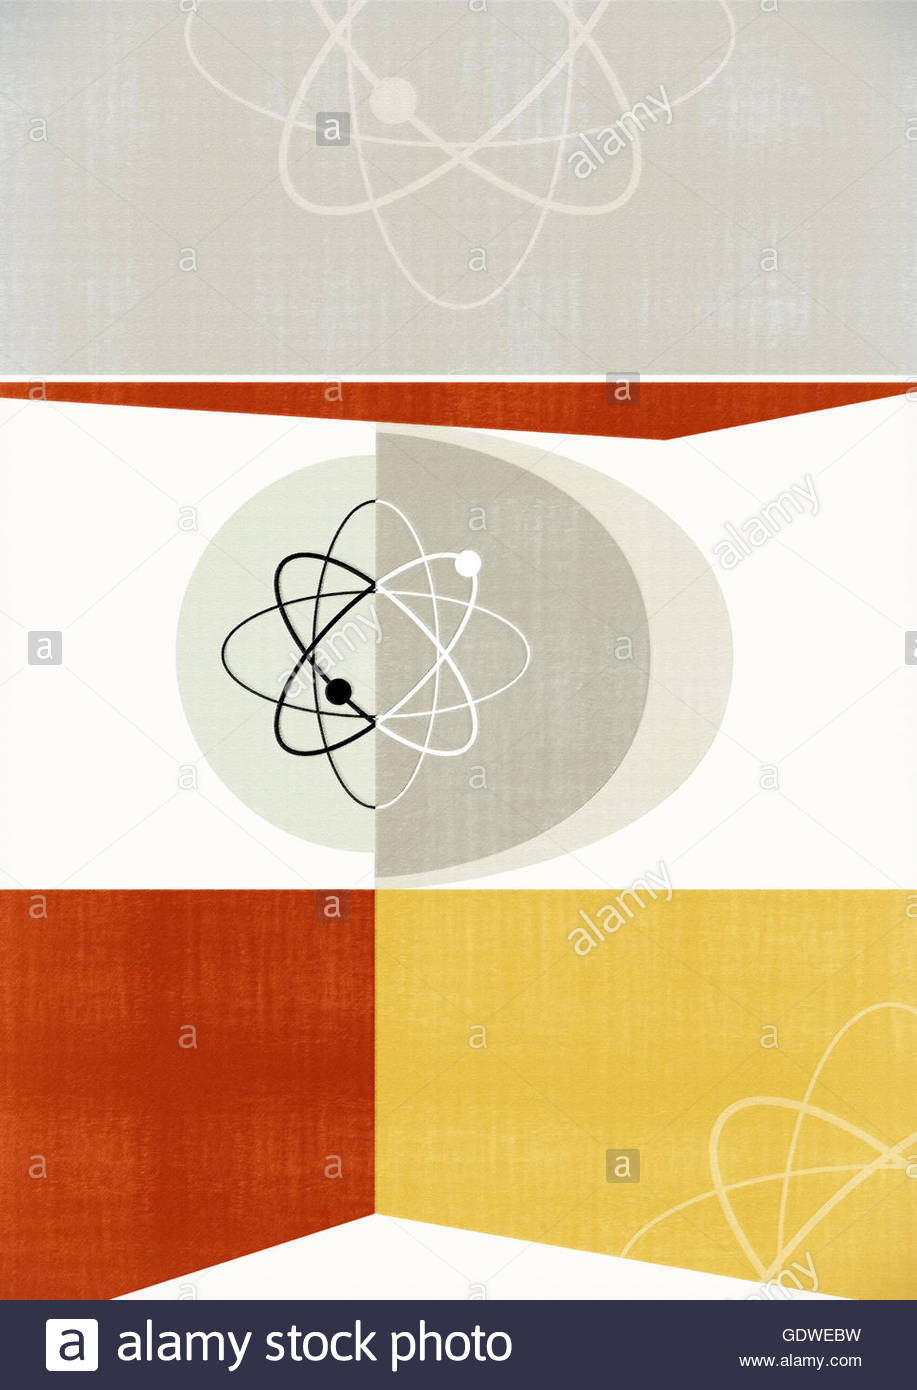 Atomic mid century vintage etro geometric background - Stock Image